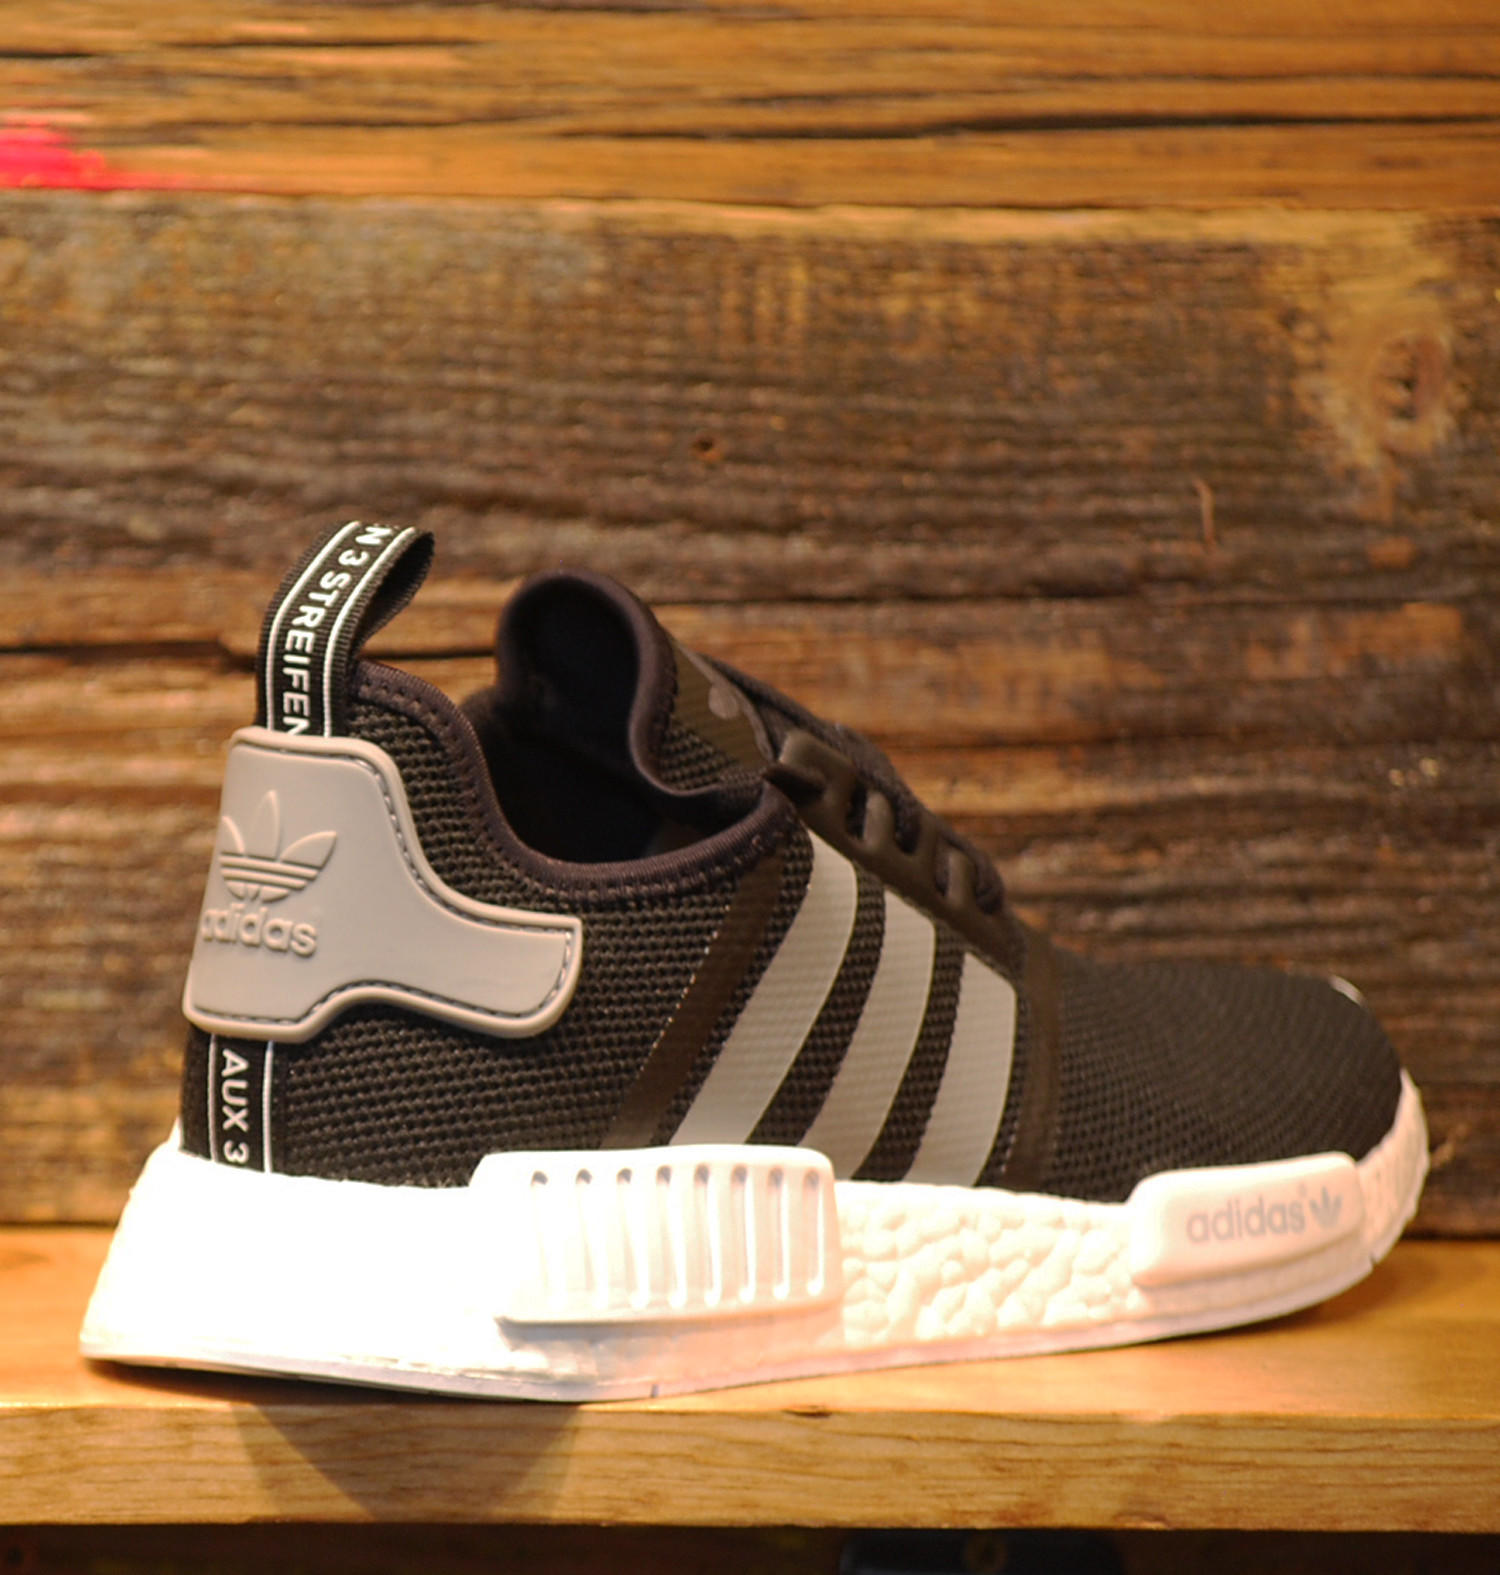 NMD R1 Black Charcoal S31504 Adidas from On The EDGE a643684bf6